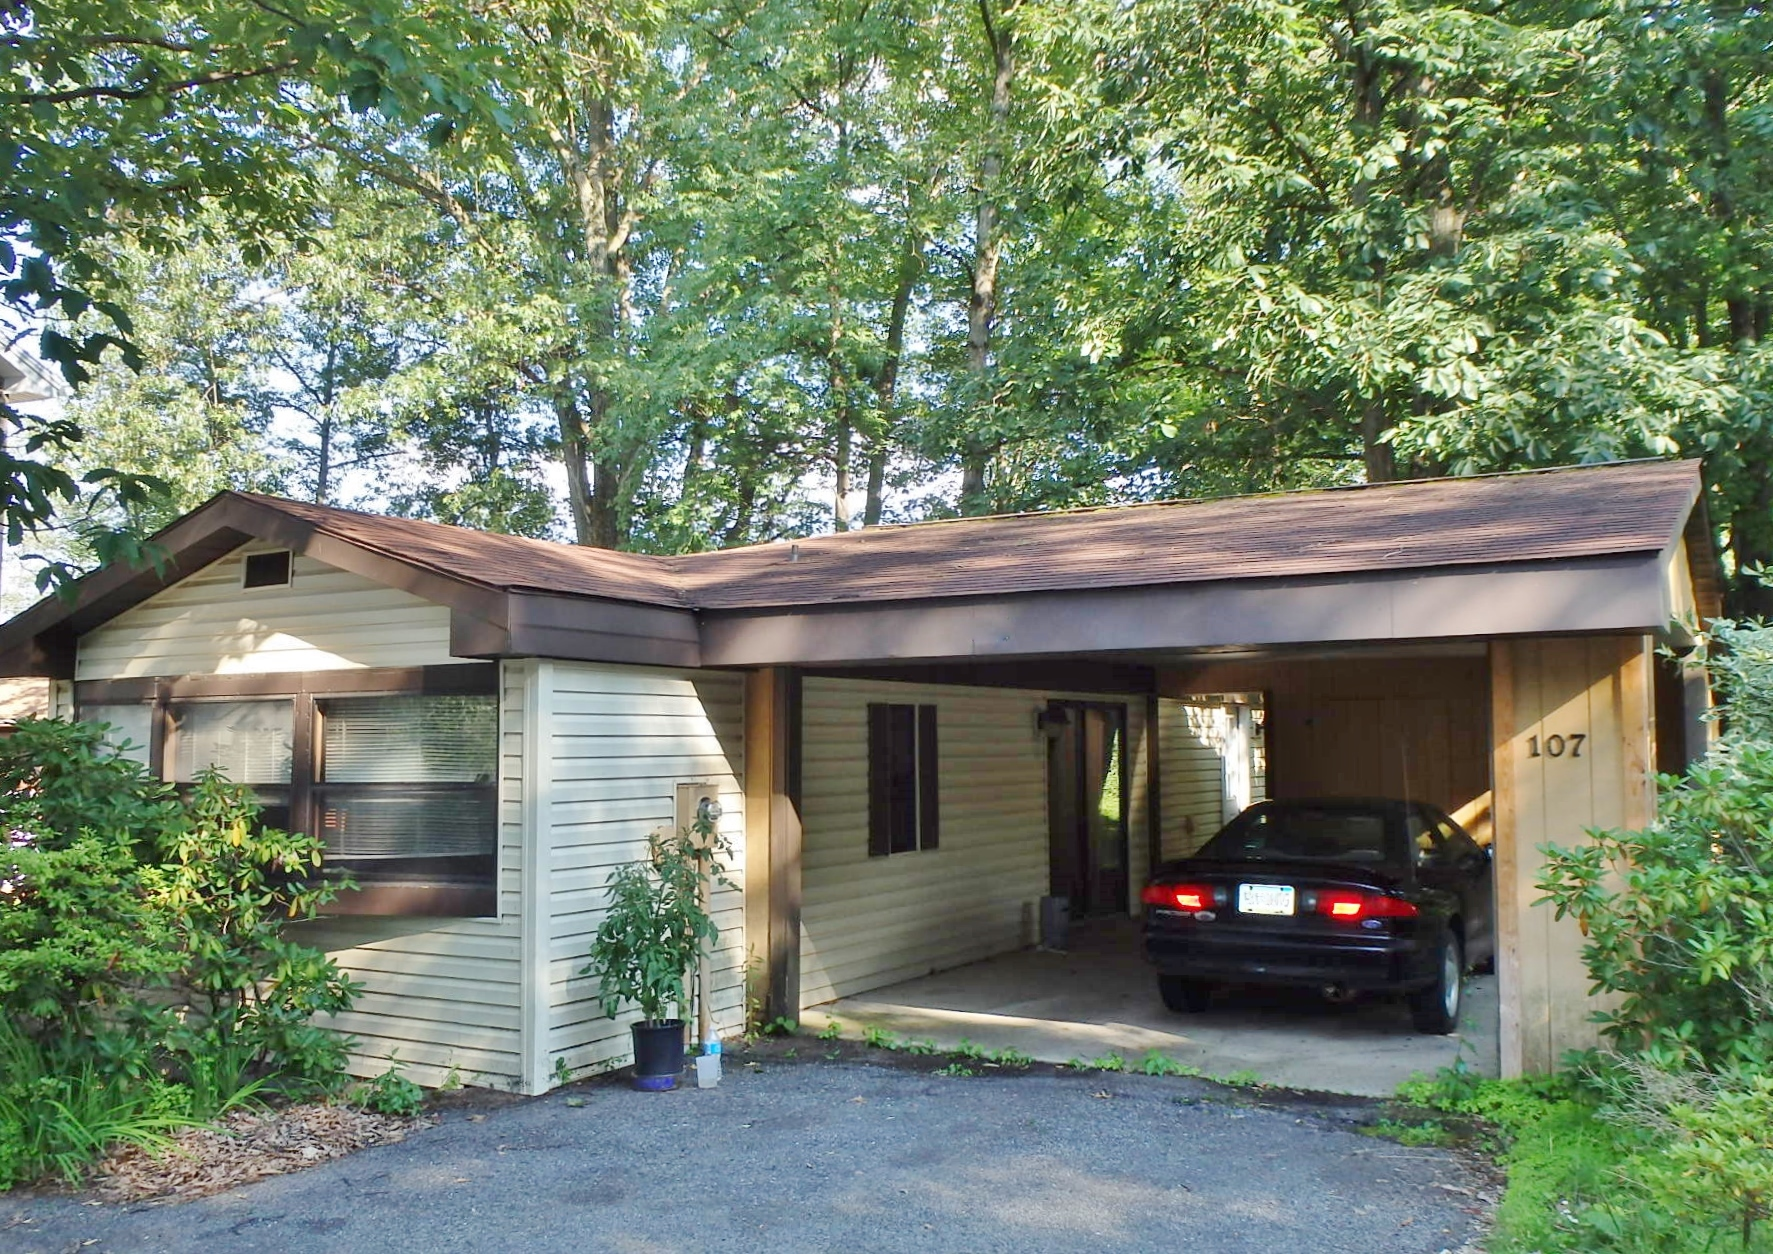 Featured photo of the 2-bedroom house for rent at 107 Driftwood Drive, State College PA.